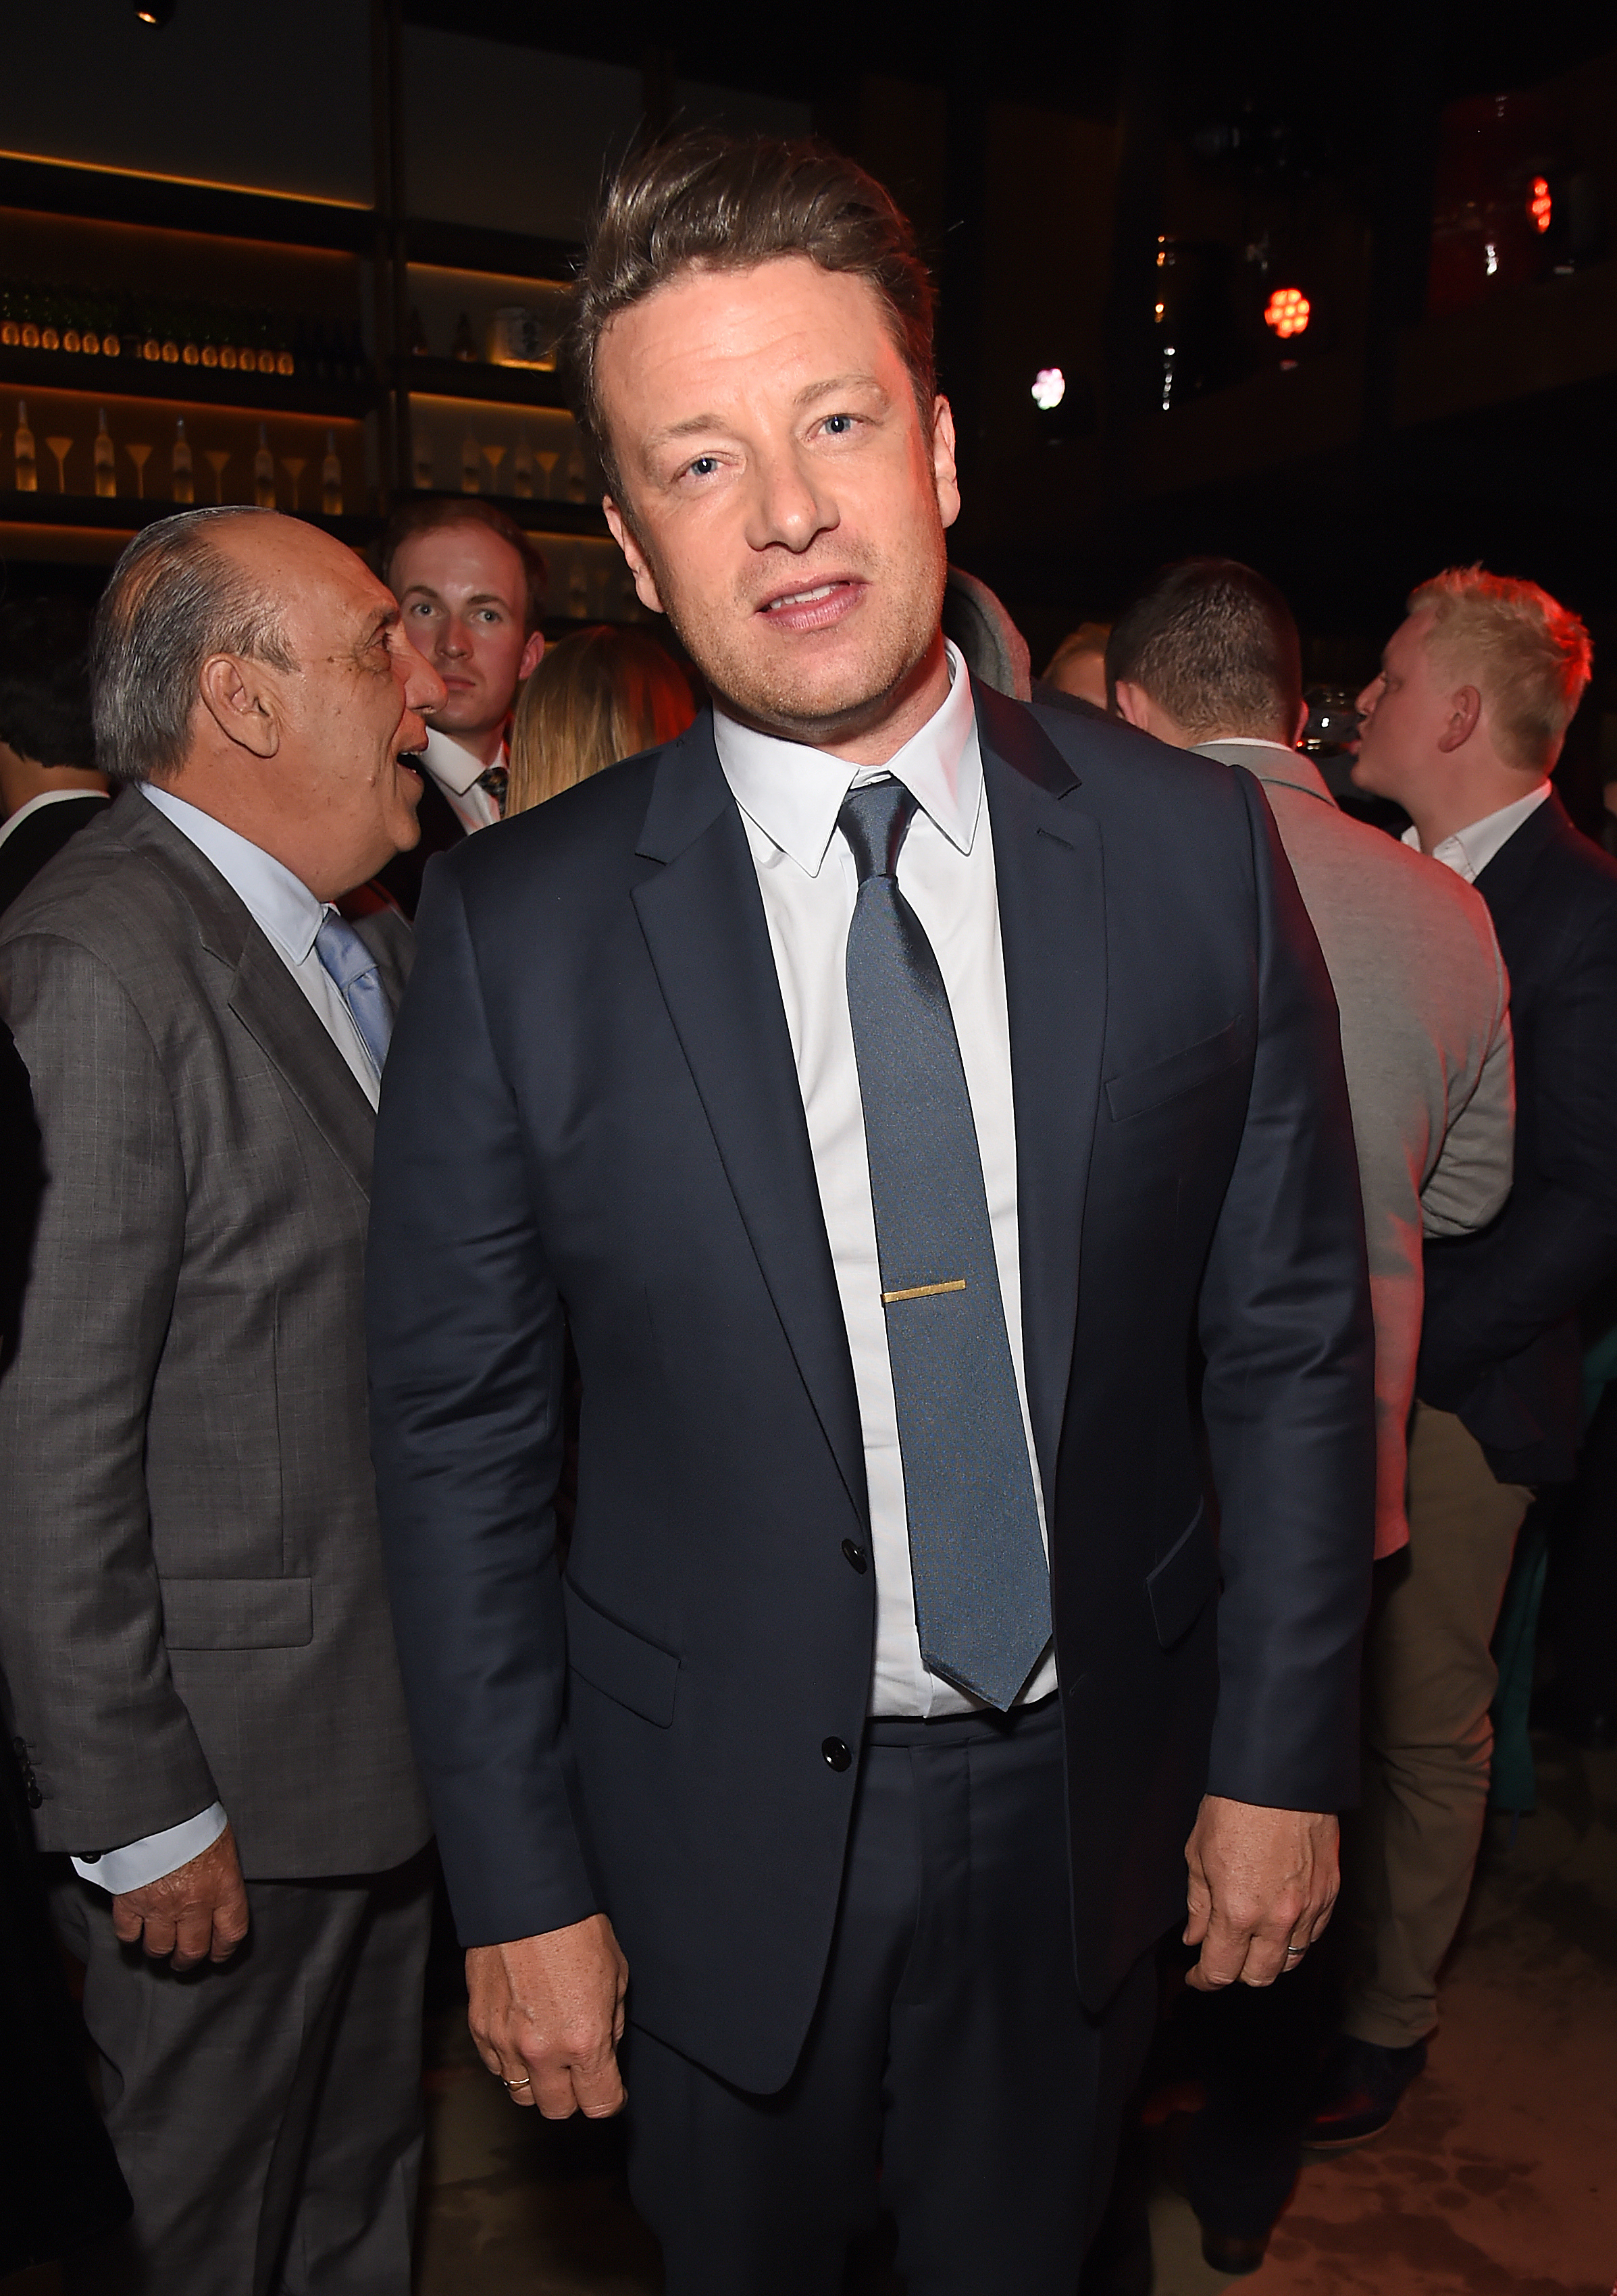 Jamie Oliver Owes Himself Millions After Collapse of Jamie's Italian Restaurant Empire